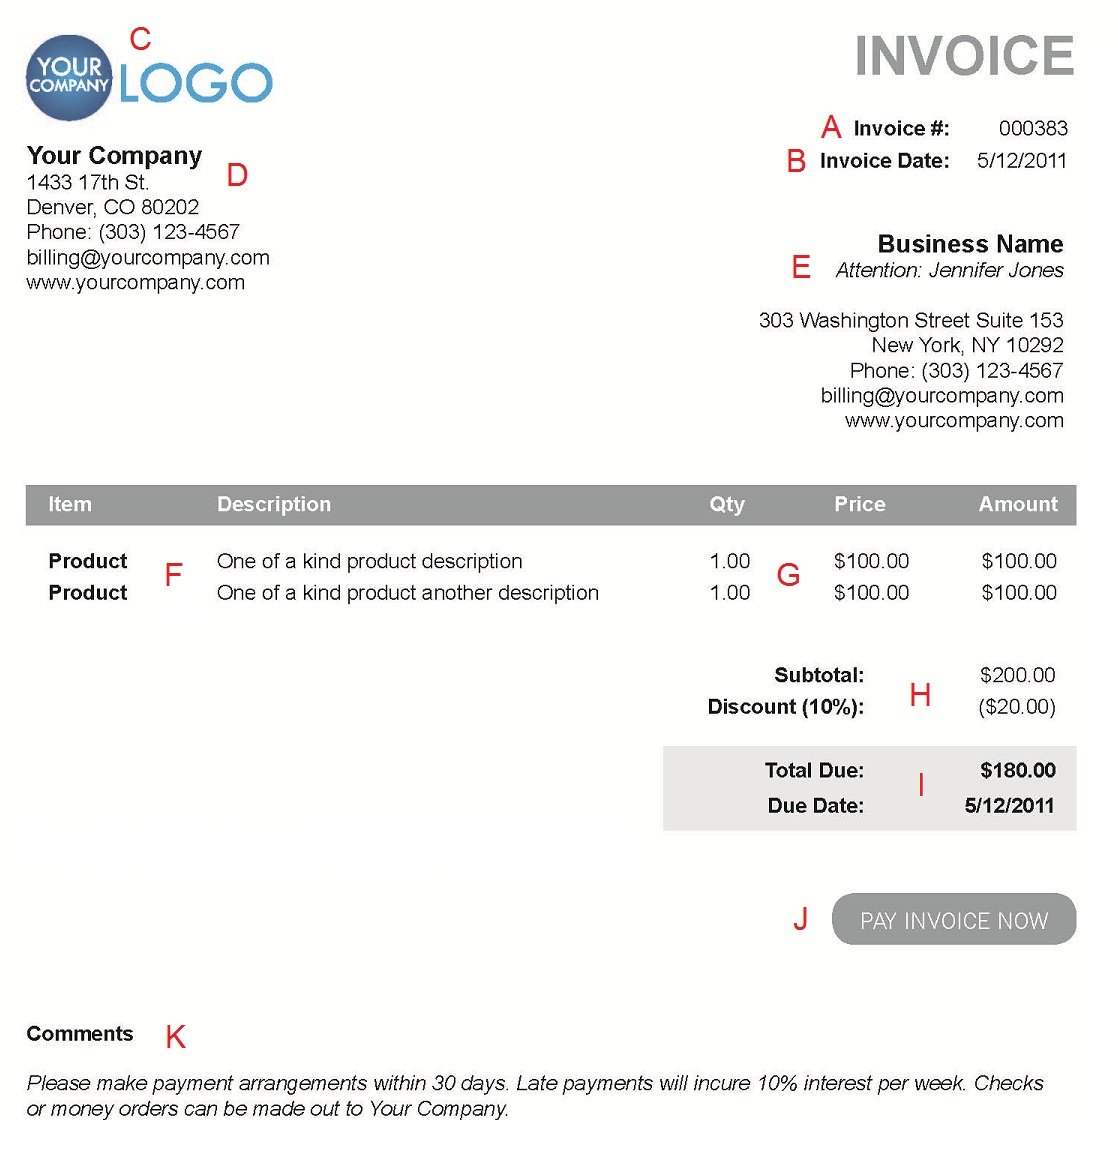 Ebitus  Terrific The  Different Sections Of An Electronic Payment Invoice With Gorgeous A  With Astonishing Virginia Gross Receipts Tax Also Receipt Reimbursement In Addition Billing Receipts And How To Write A Cash Receipt As Well As Shoebox Receipt Additionally Iphone App For Receipts From Paysimplecom With Ebitus  Gorgeous The  Different Sections Of An Electronic Payment Invoice With Astonishing A  And Terrific Virginia Gross Receipts Tax Also Receipt Reimbursement In Addition Billing Receipts From Paysimplecom